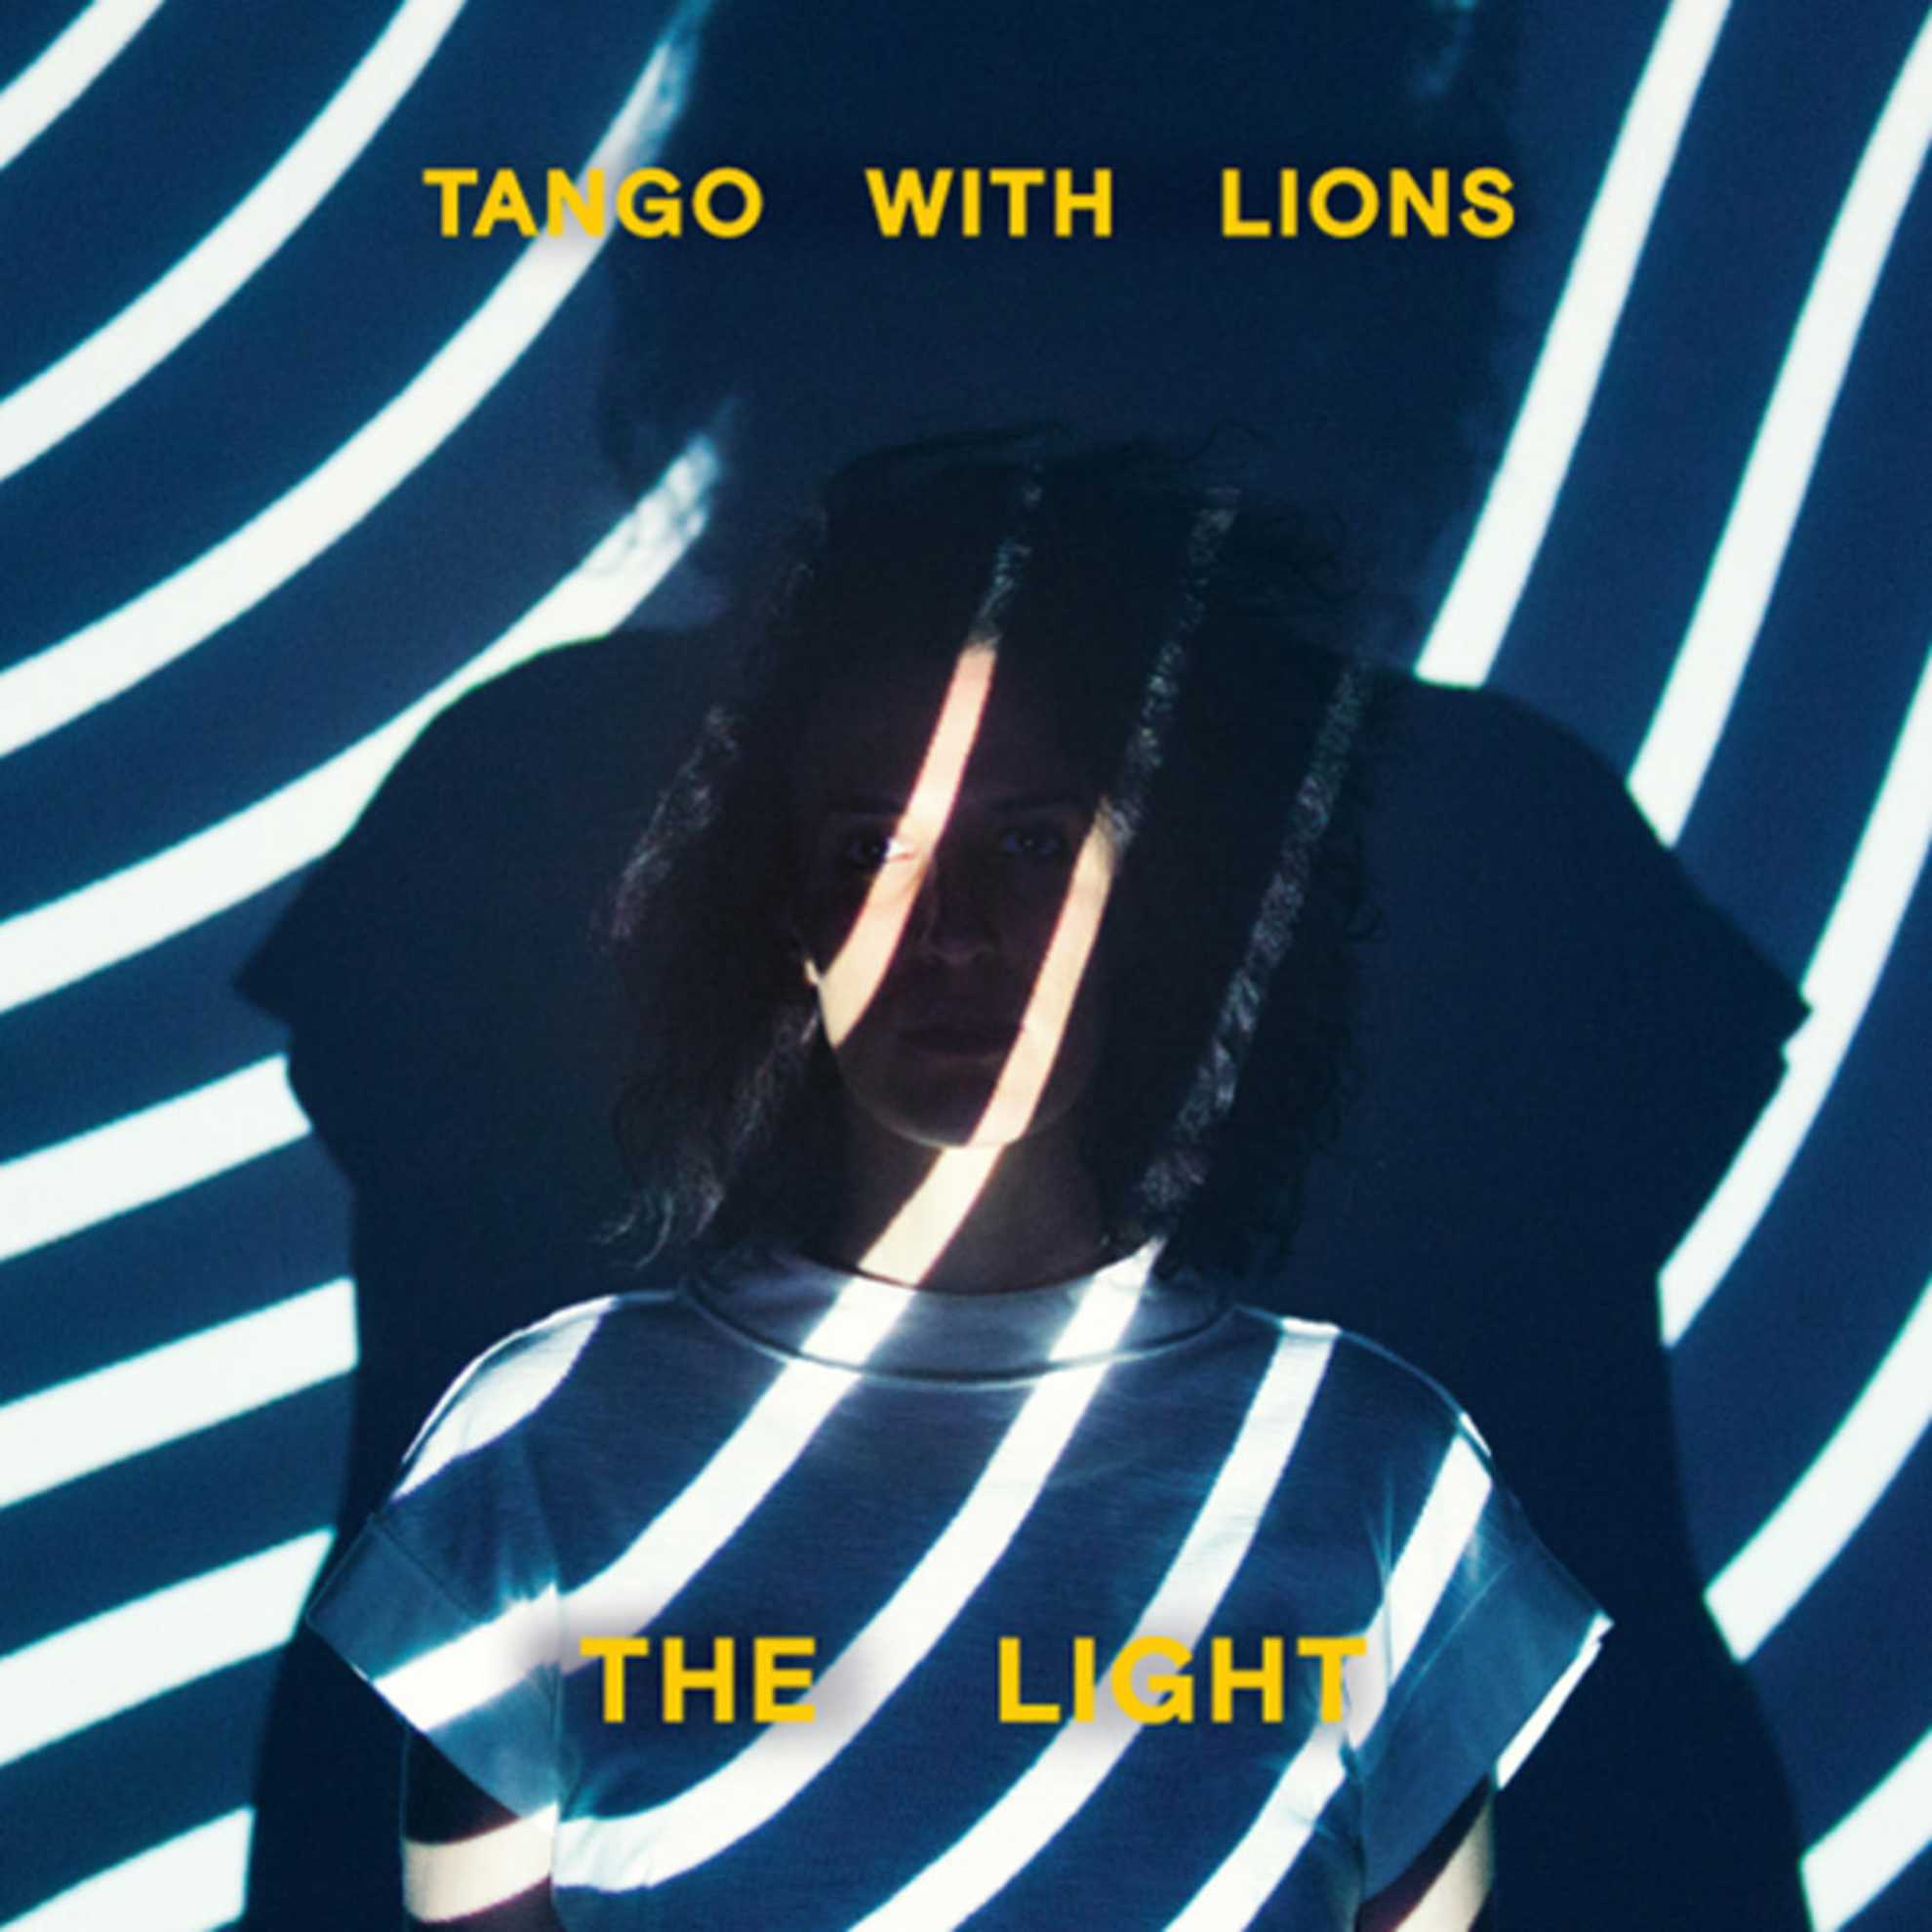 TwL - The Light